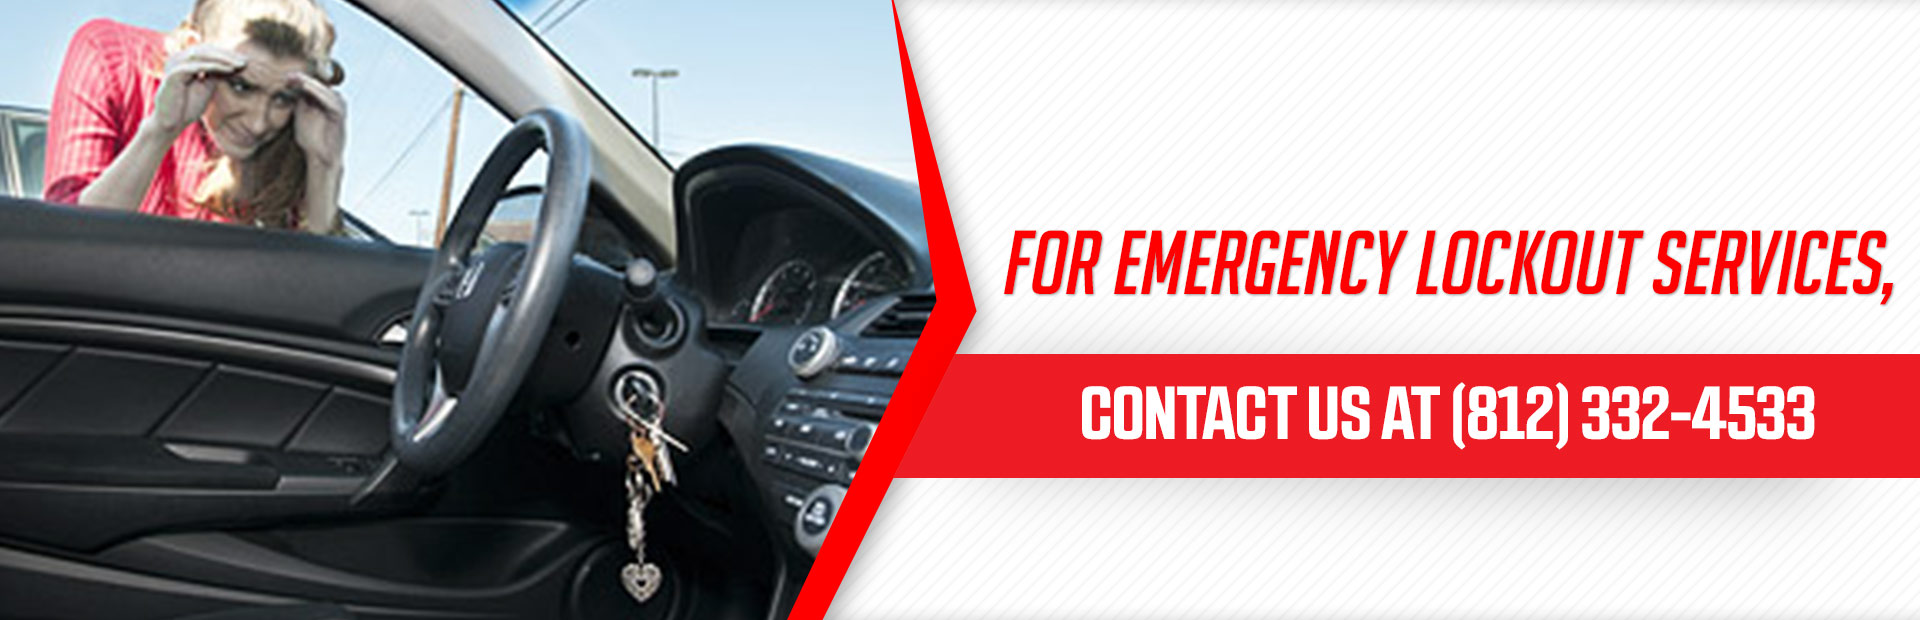 For emergency lockout services, contact us at 812-332-4533.